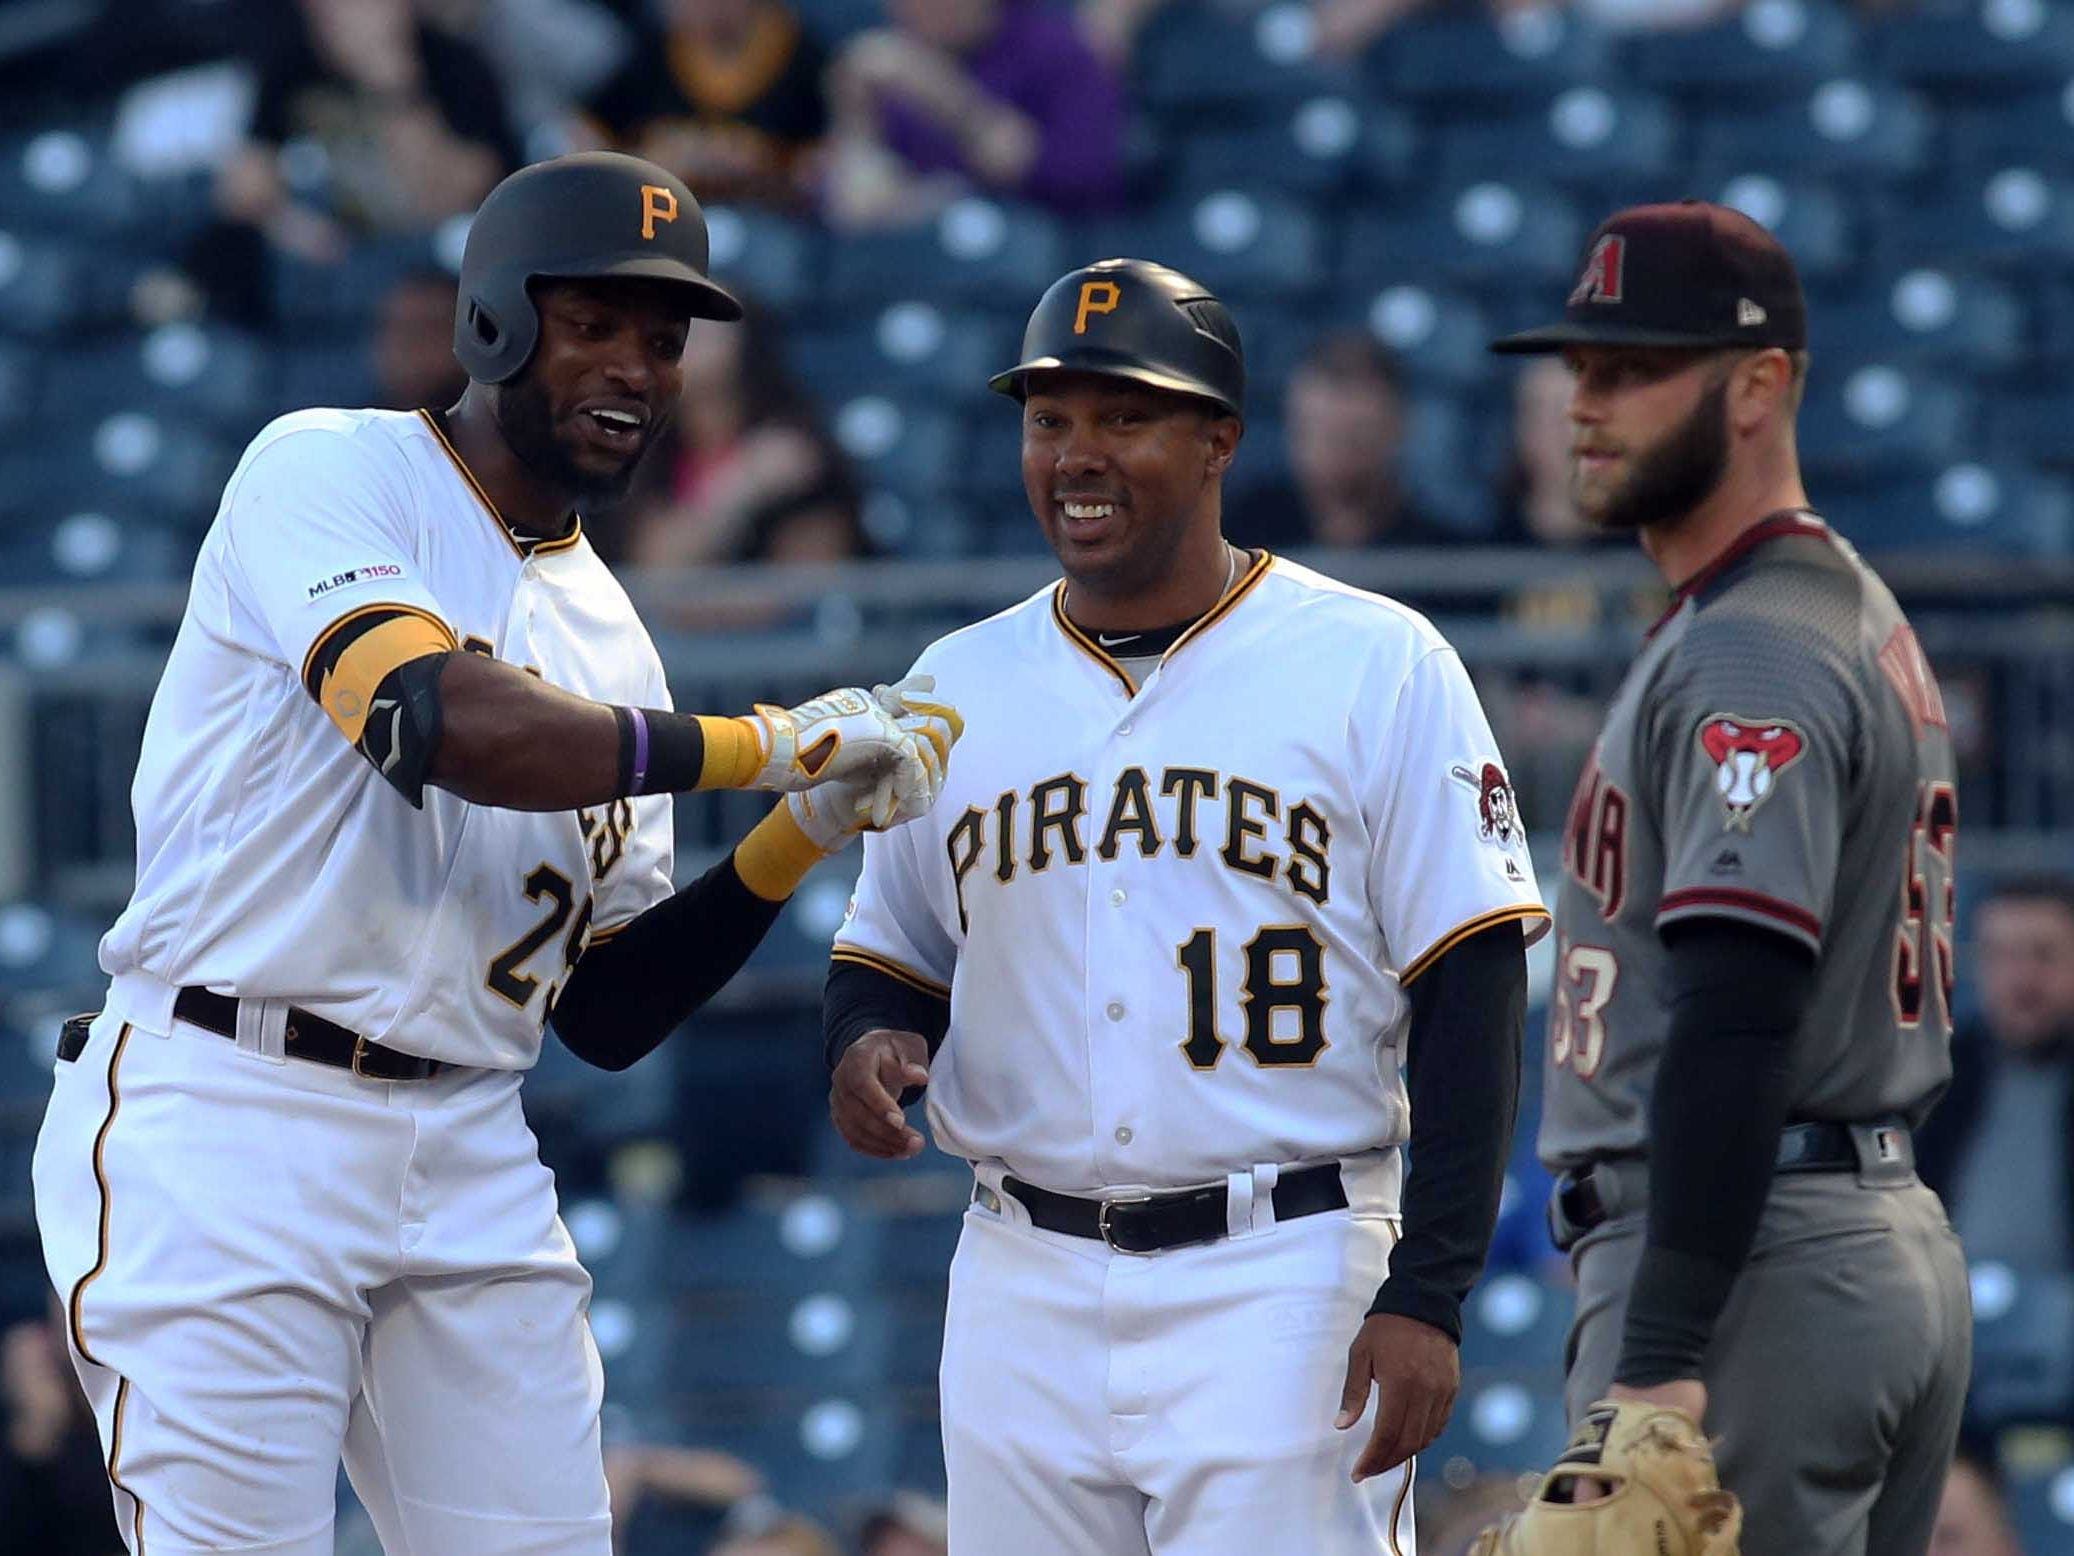 Apr 22, 2019; Pittsburgh, PA, USA;  Pittsburgh Pirates right fielder Gregory Polanco (25) demonstrates his swing to first base coach Kimera Bartee (18) after Polanco recorded his fist hit of the season during the first inning after being activated from the injured reserve list against the Arizona Diamondbacks at PNC Park.